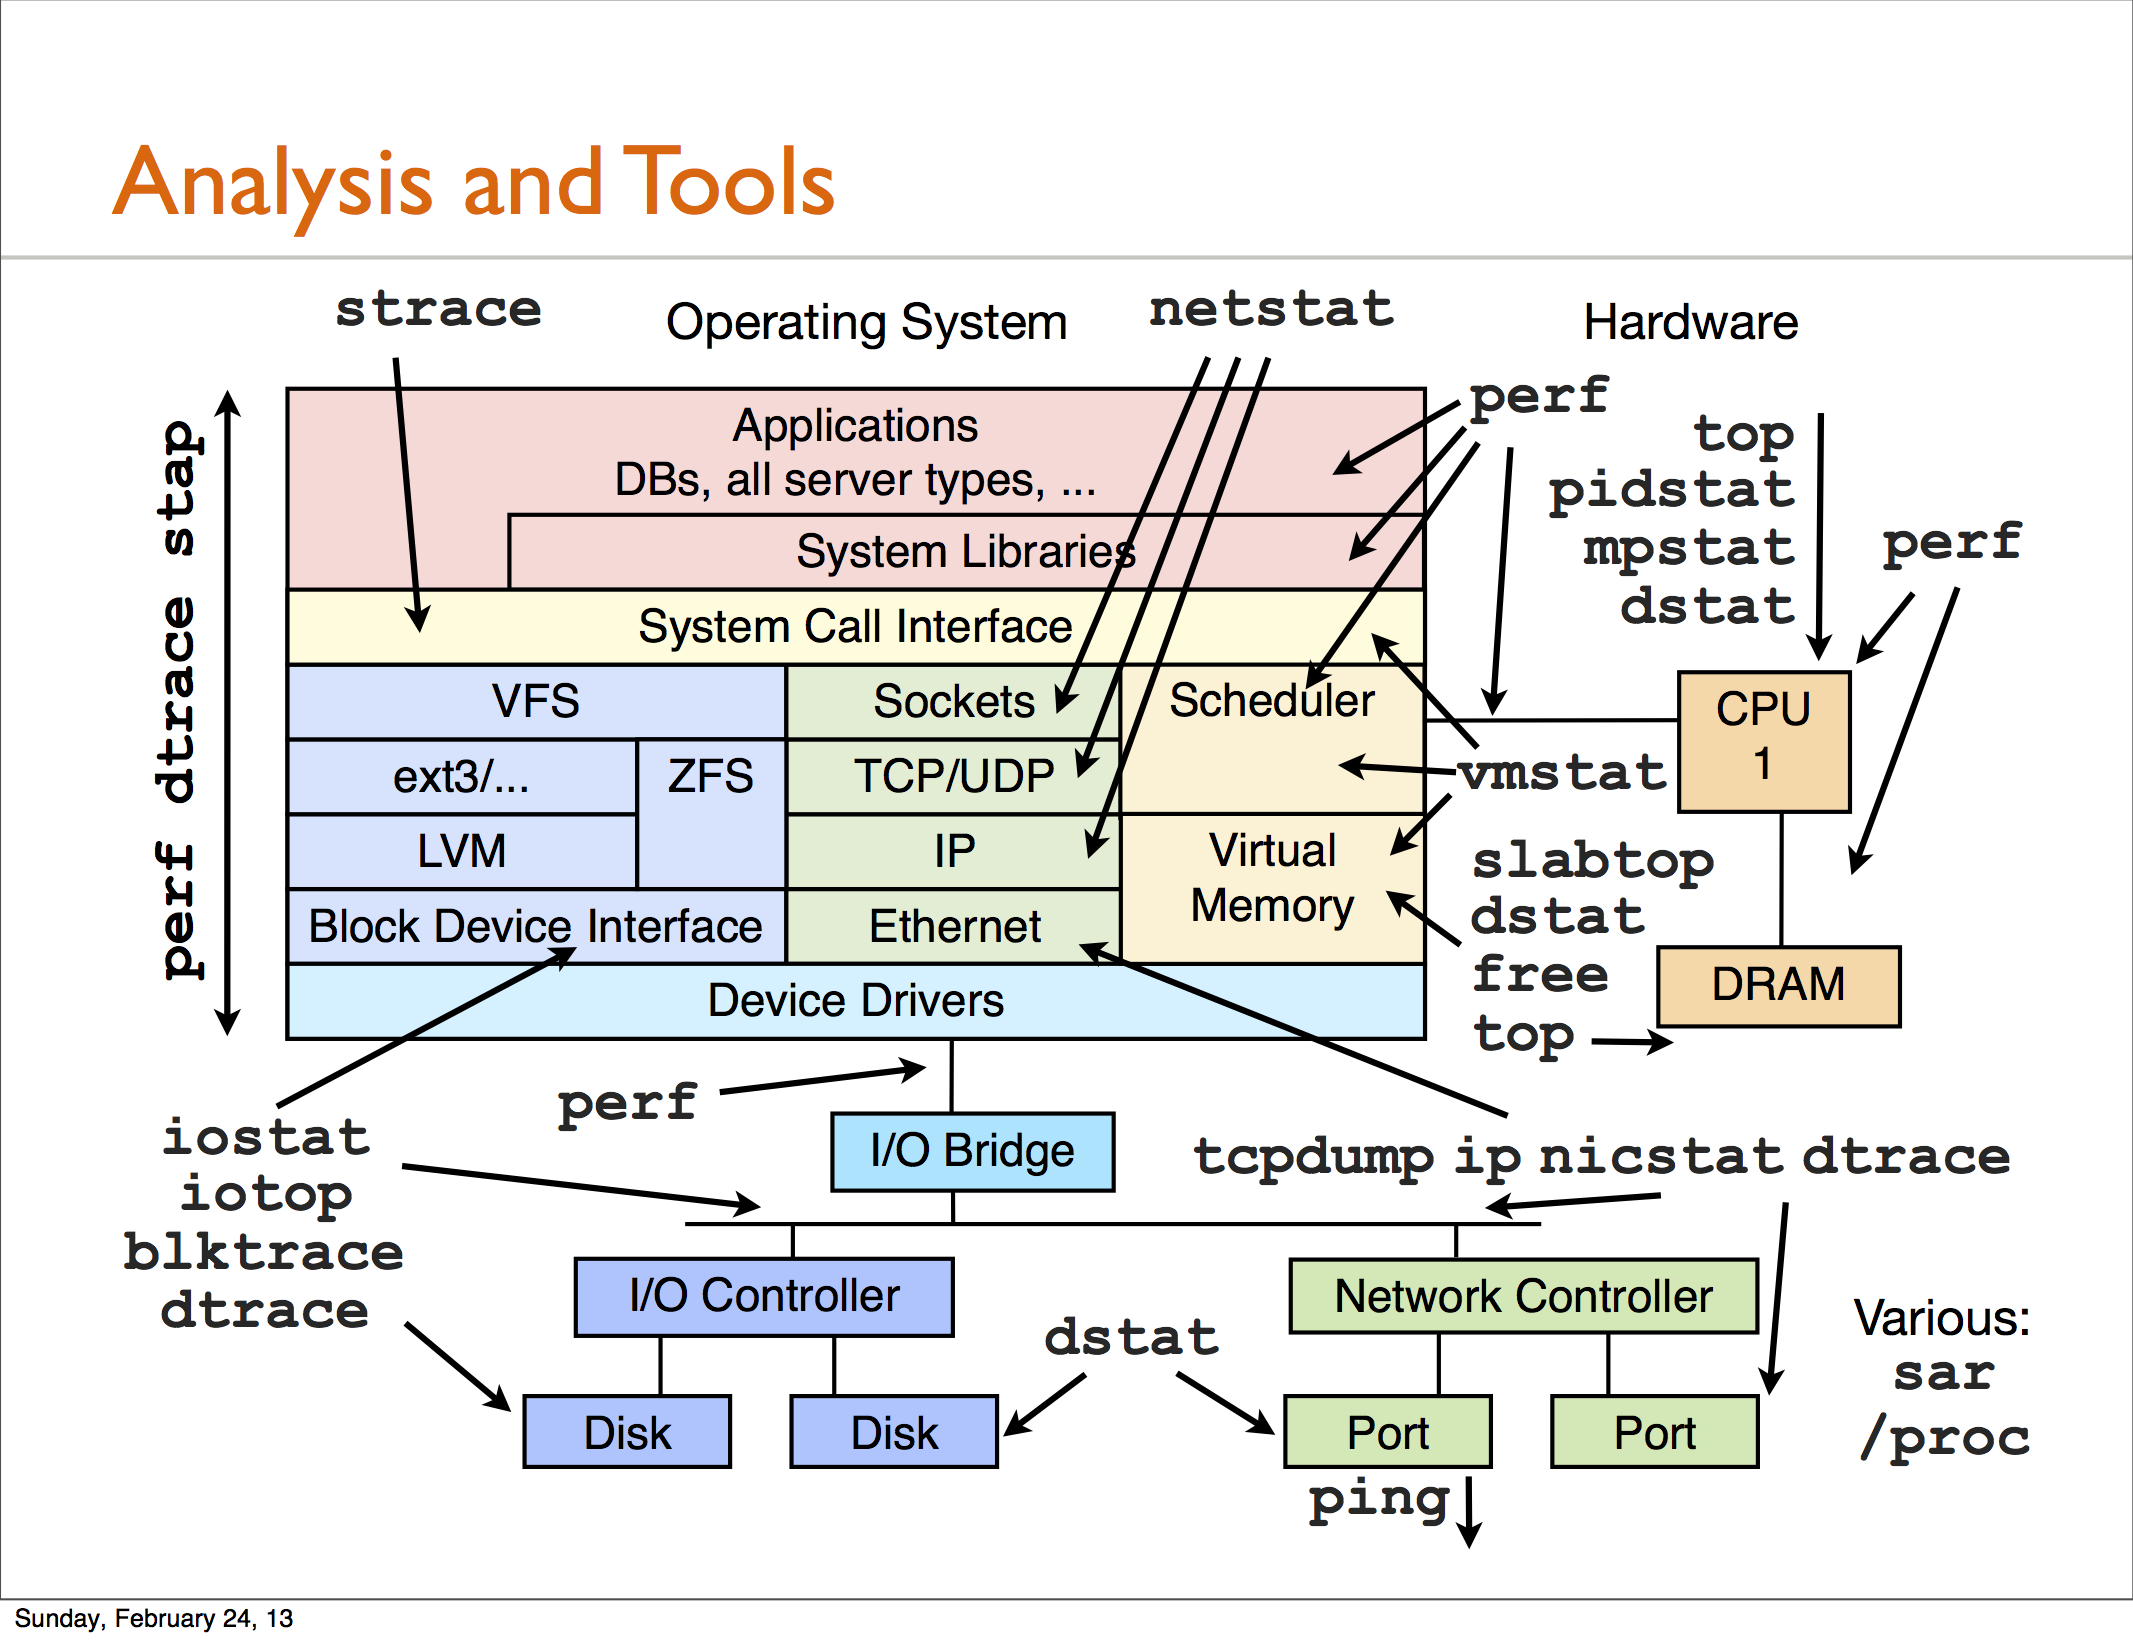 Linux Performance Analysis and Tools.png